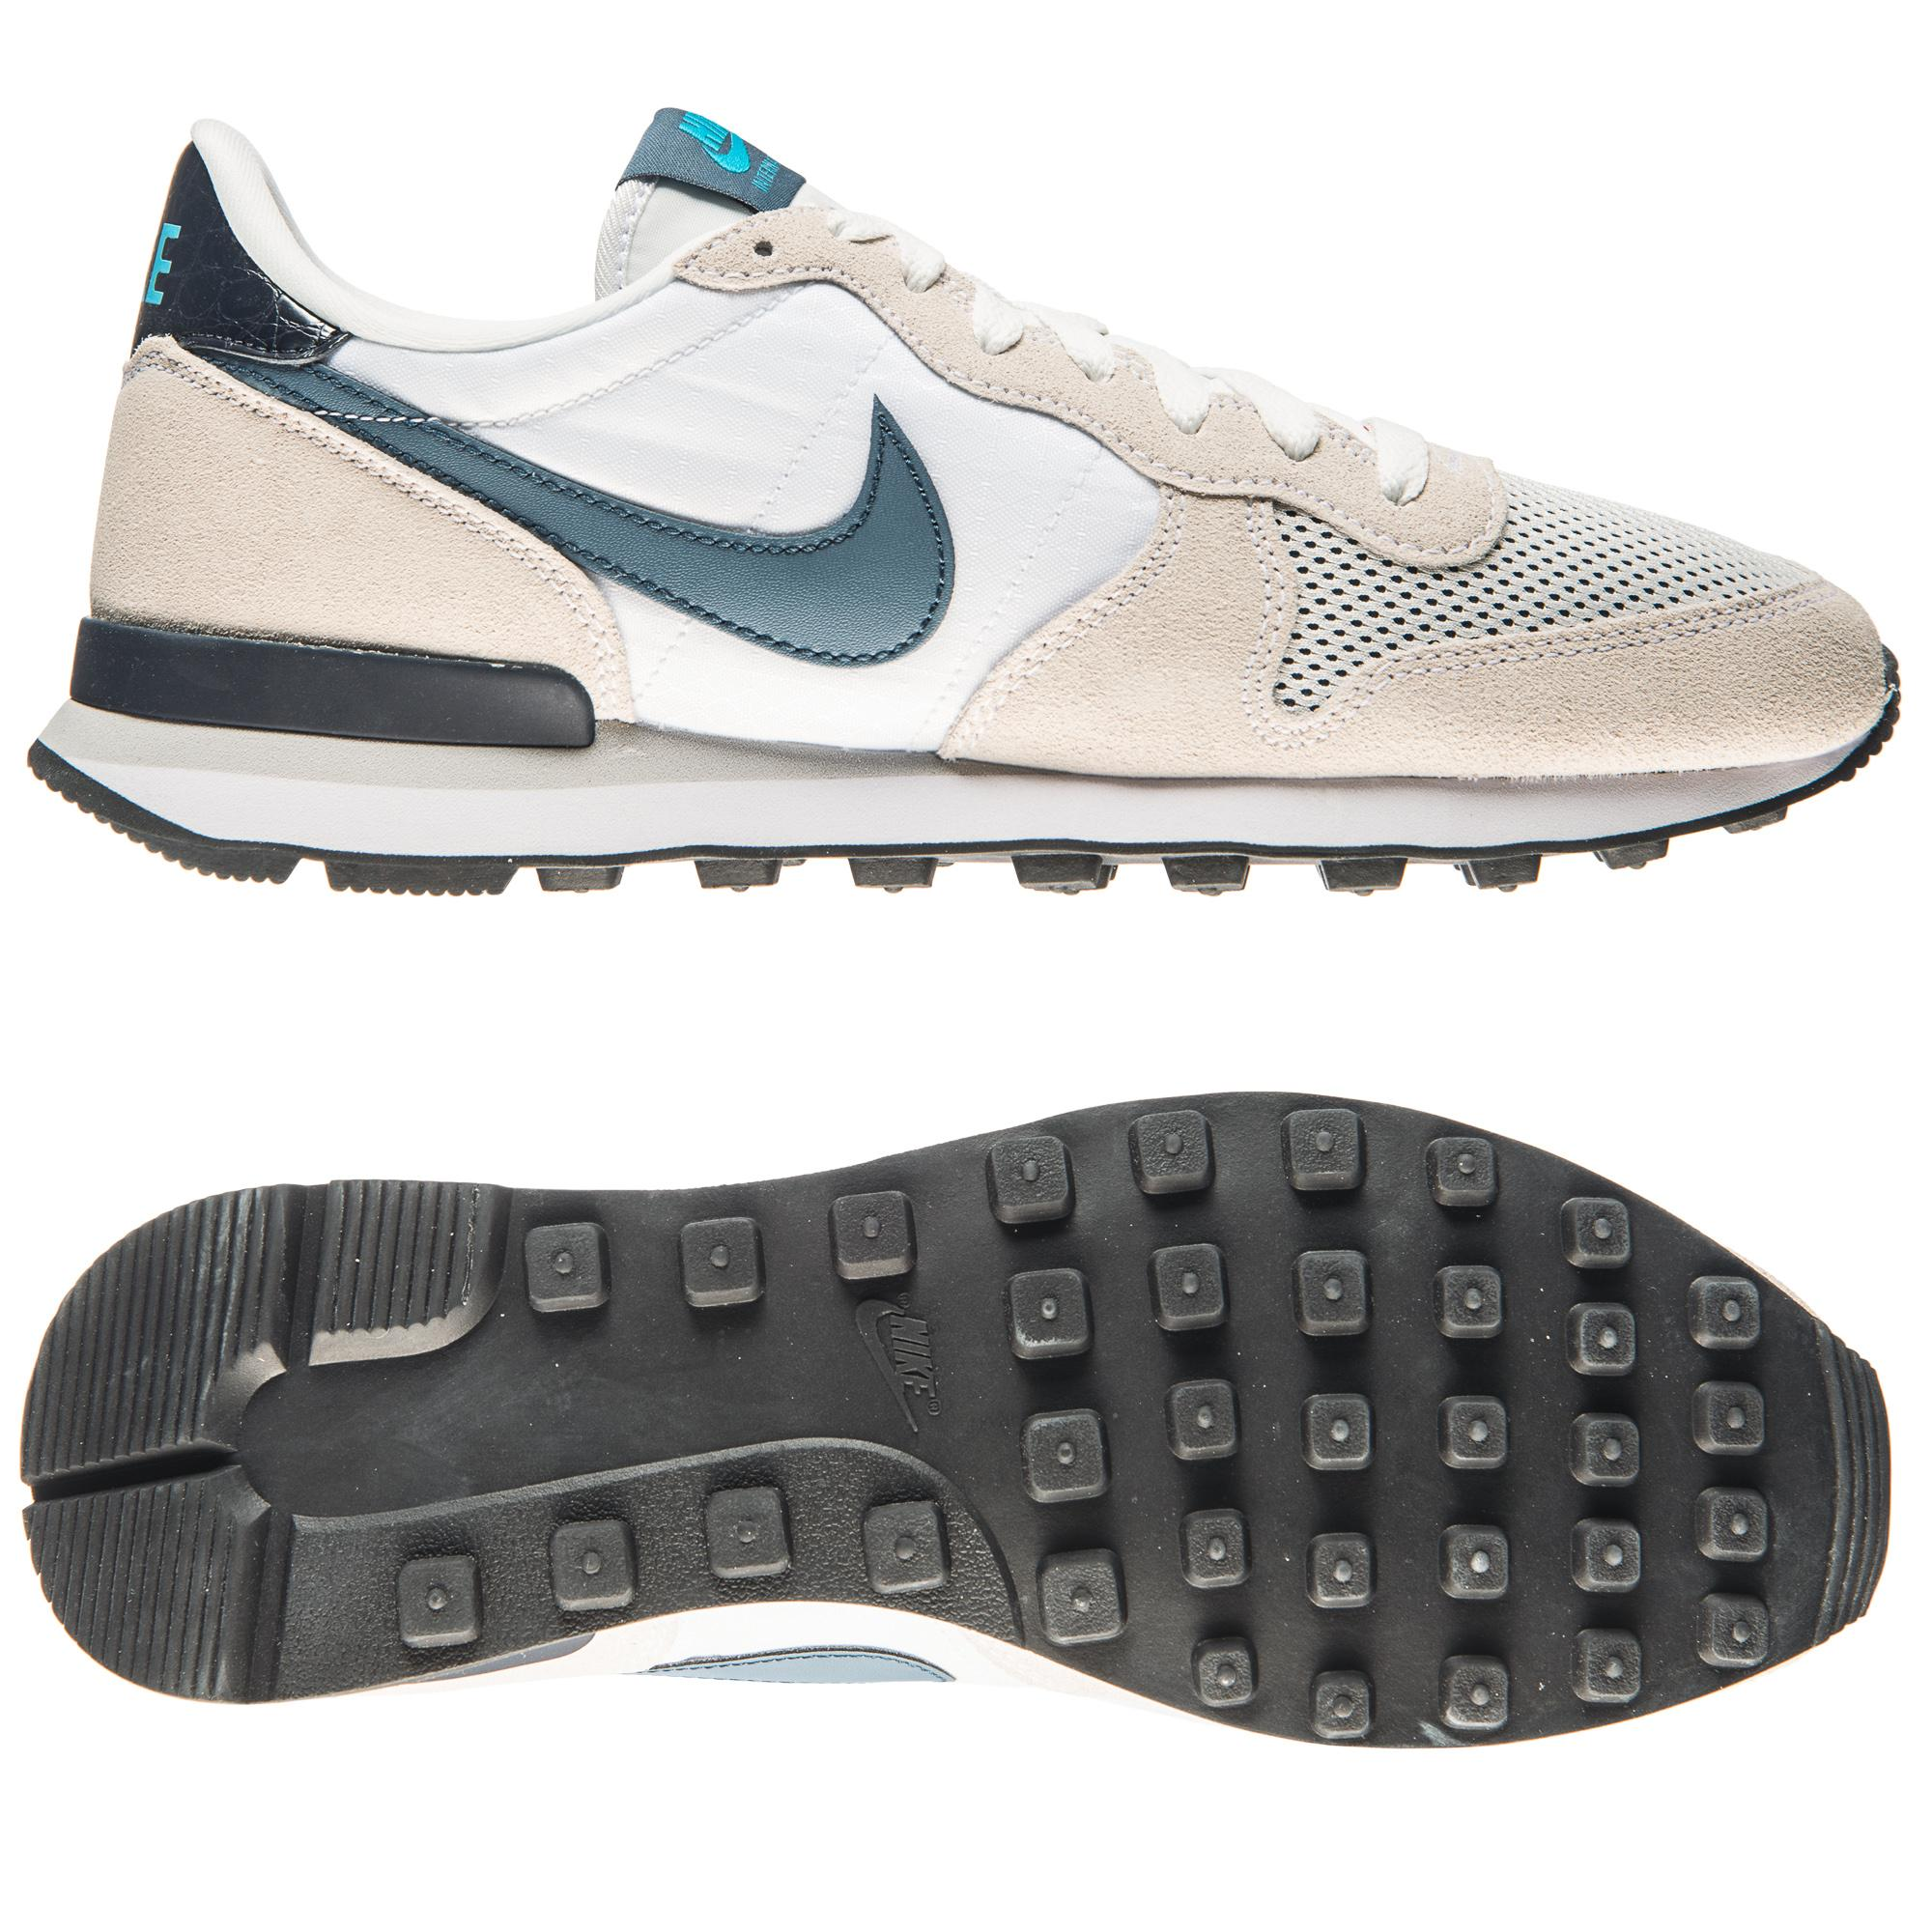 Nike Internationalist Vit/Navy/Svart